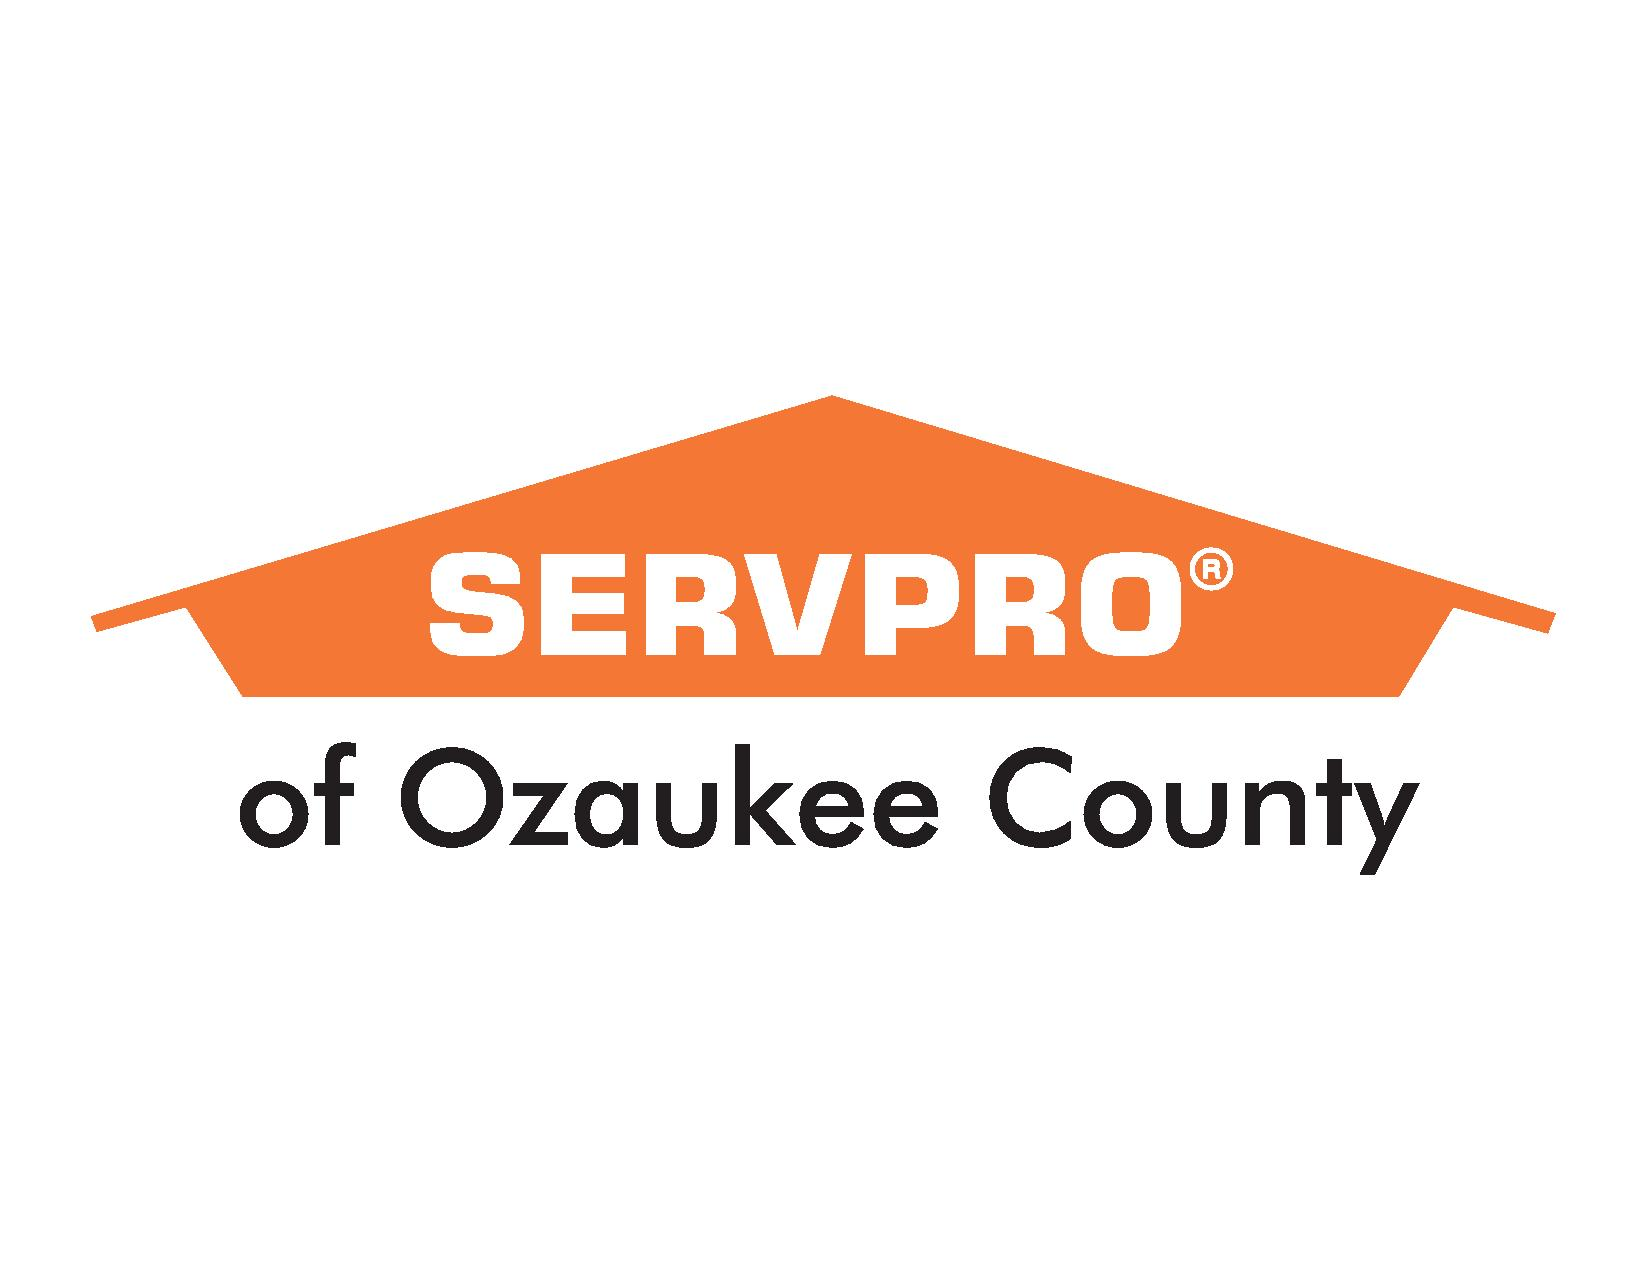 Servpro Of Ozaukee County in Mequon, WI - 262-242-8888